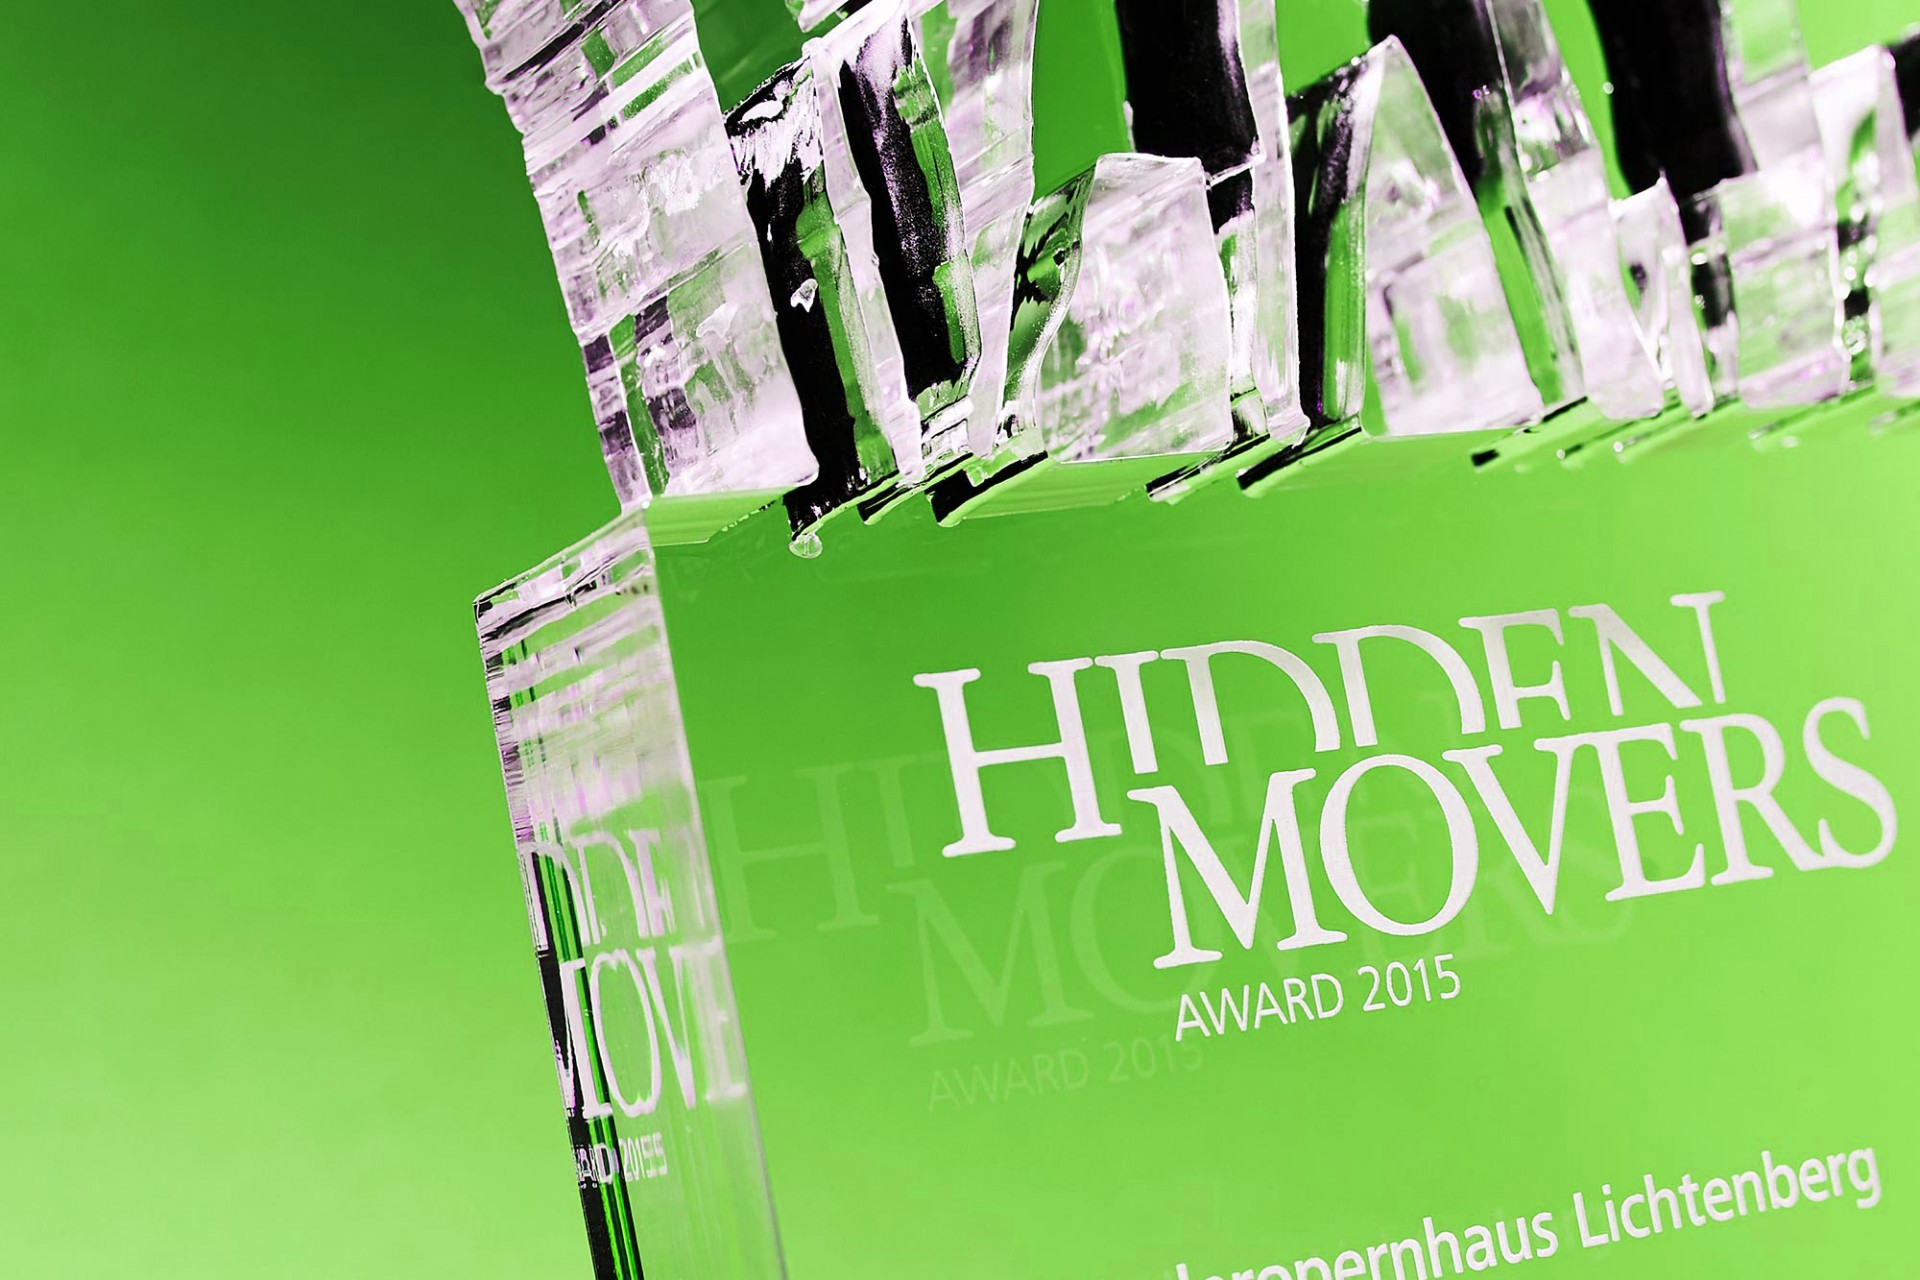 Gestaltanstalt Redesign Hidden Movers Award